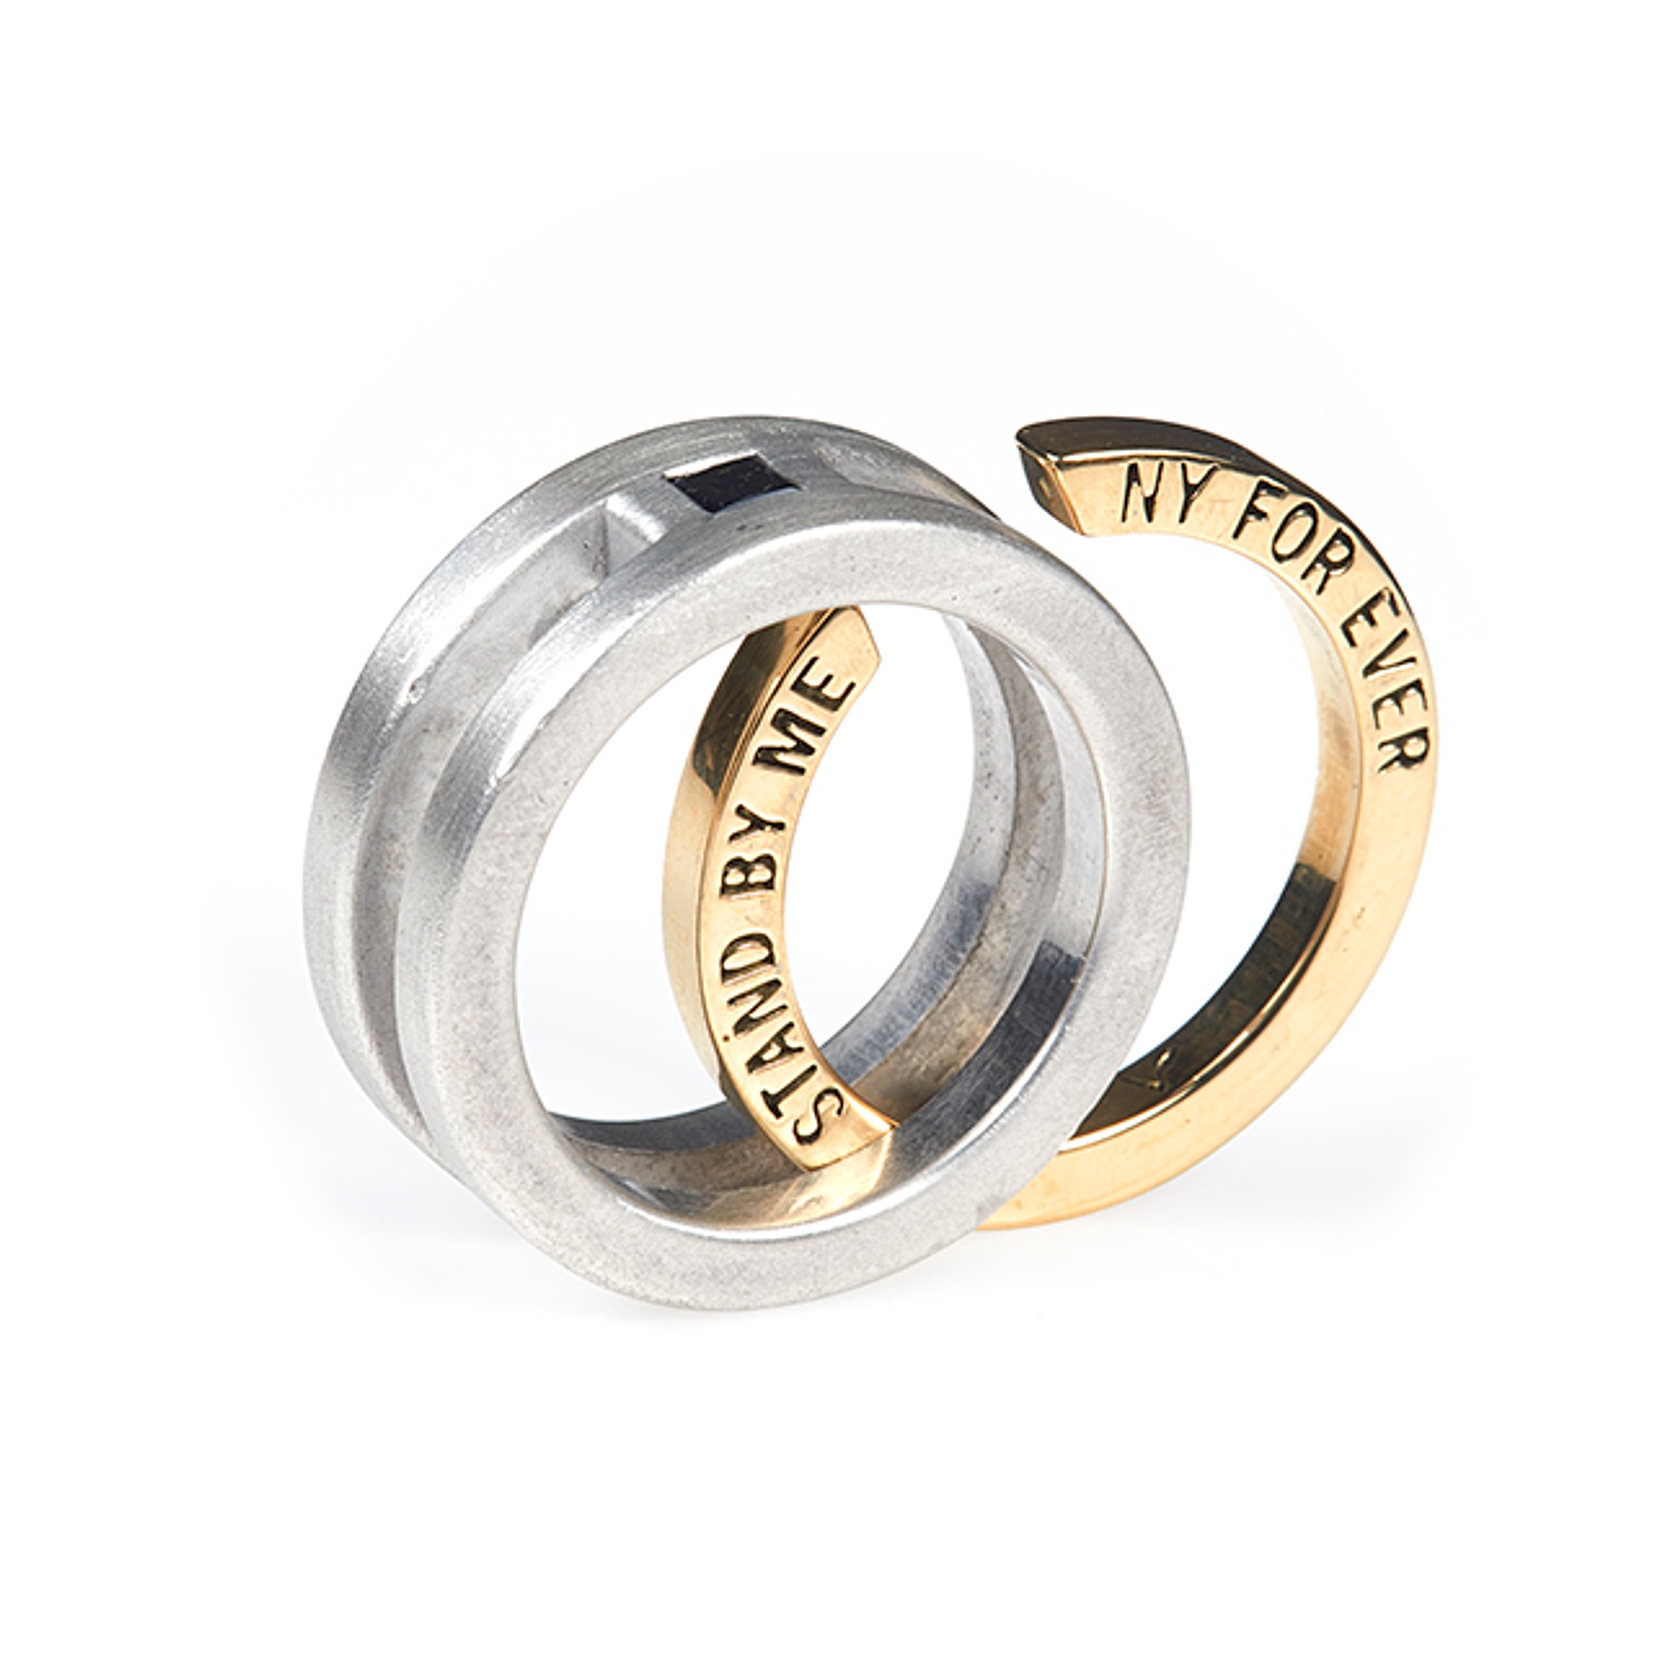 ambrosio wedding enement - Interlocking Wedding Rings